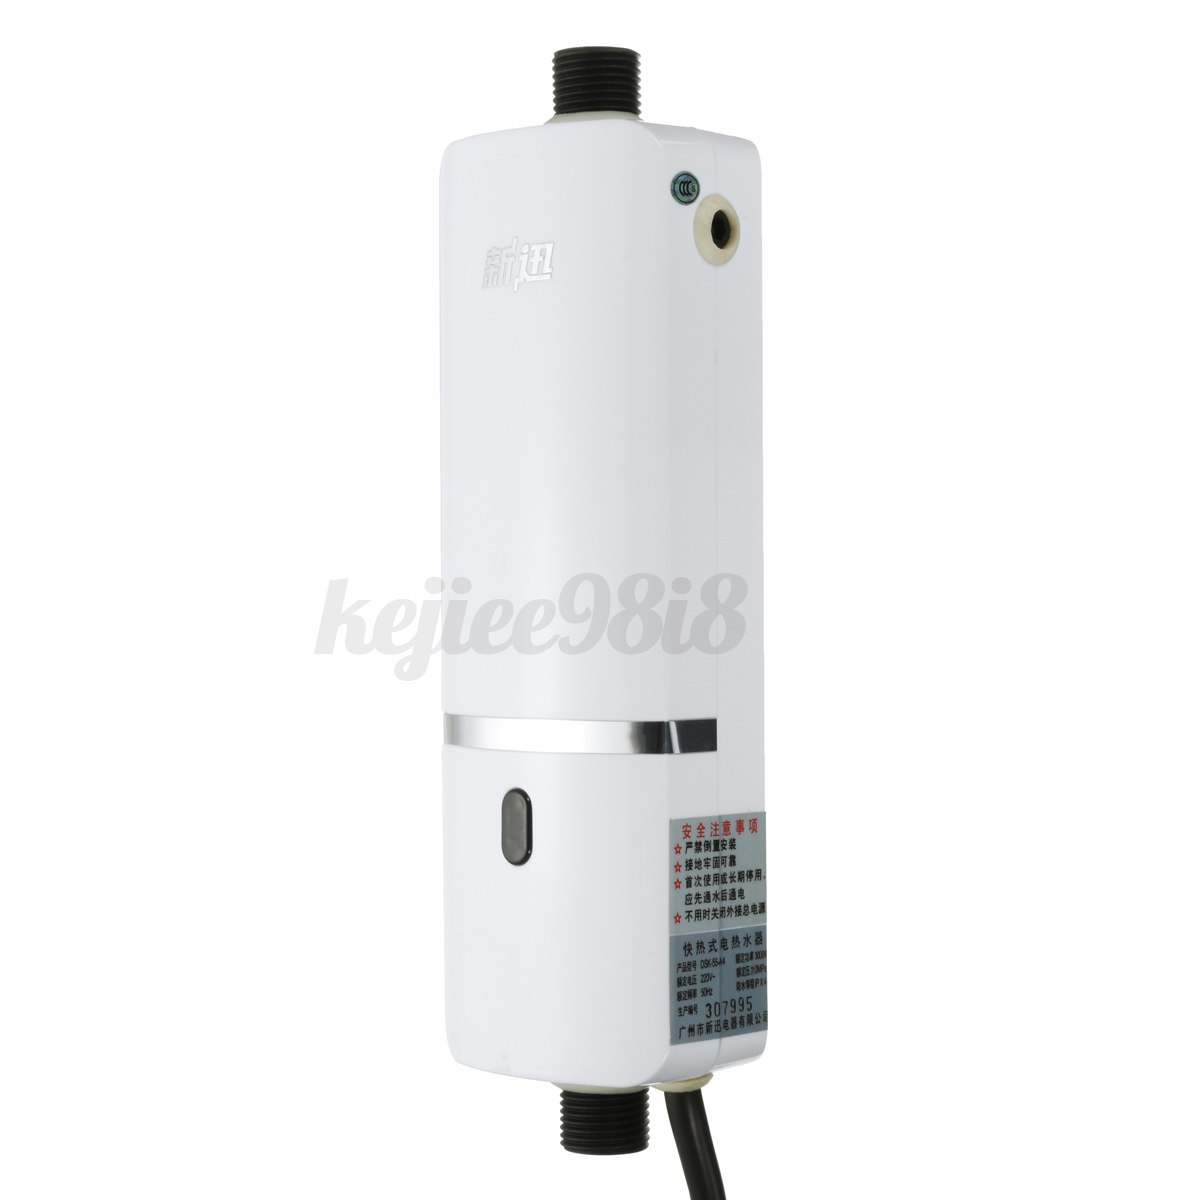 Bathroom kitchen electric instant hot water system for 3 bathroom tankless water heater